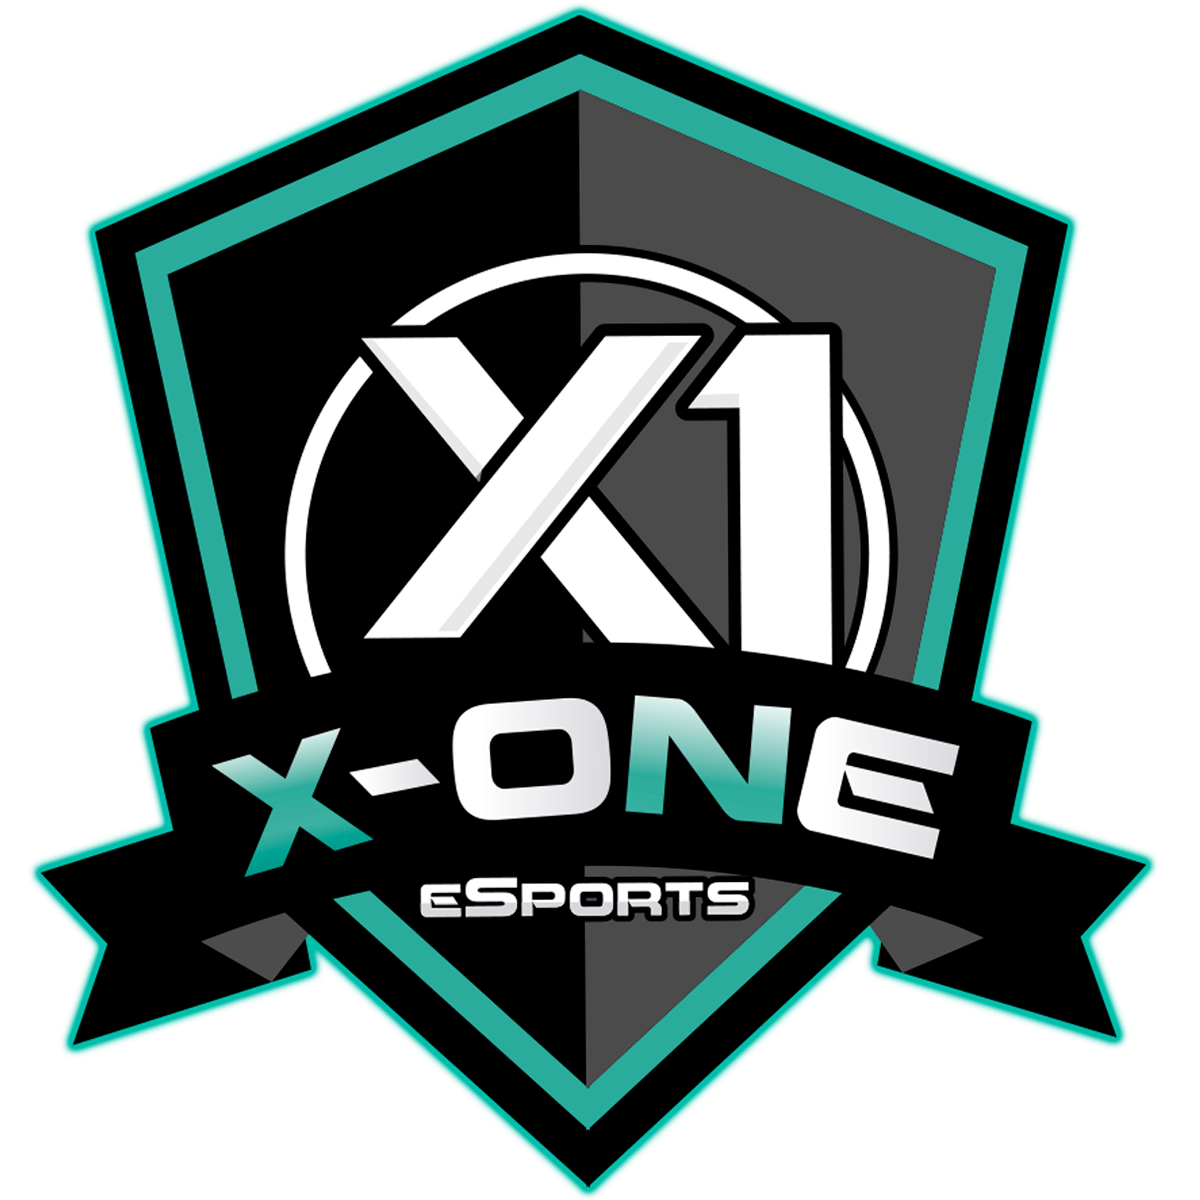 Logo-X-ONE eSports3070.png